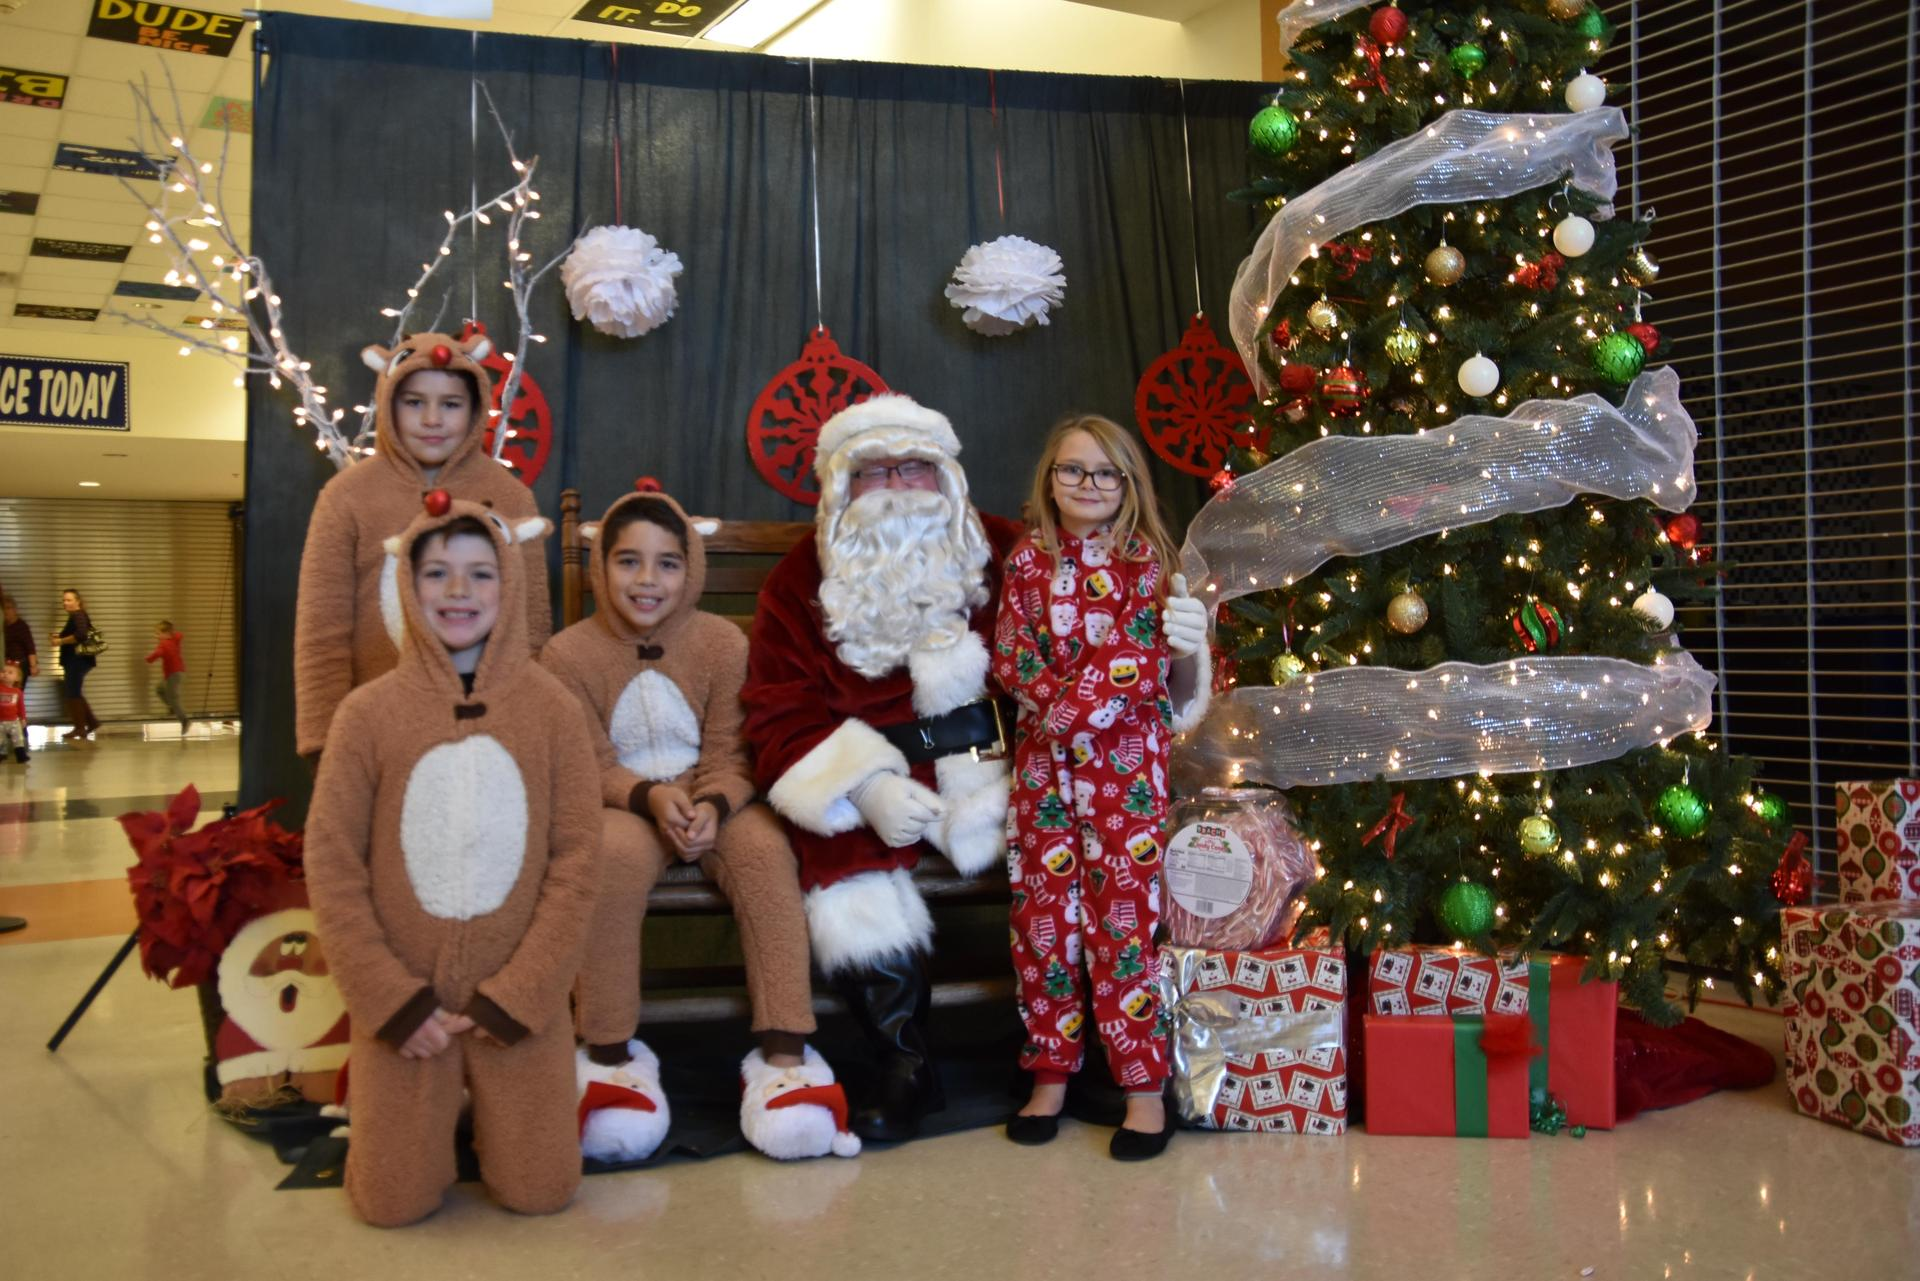 Pancakes with Santa included free photos with Santa.